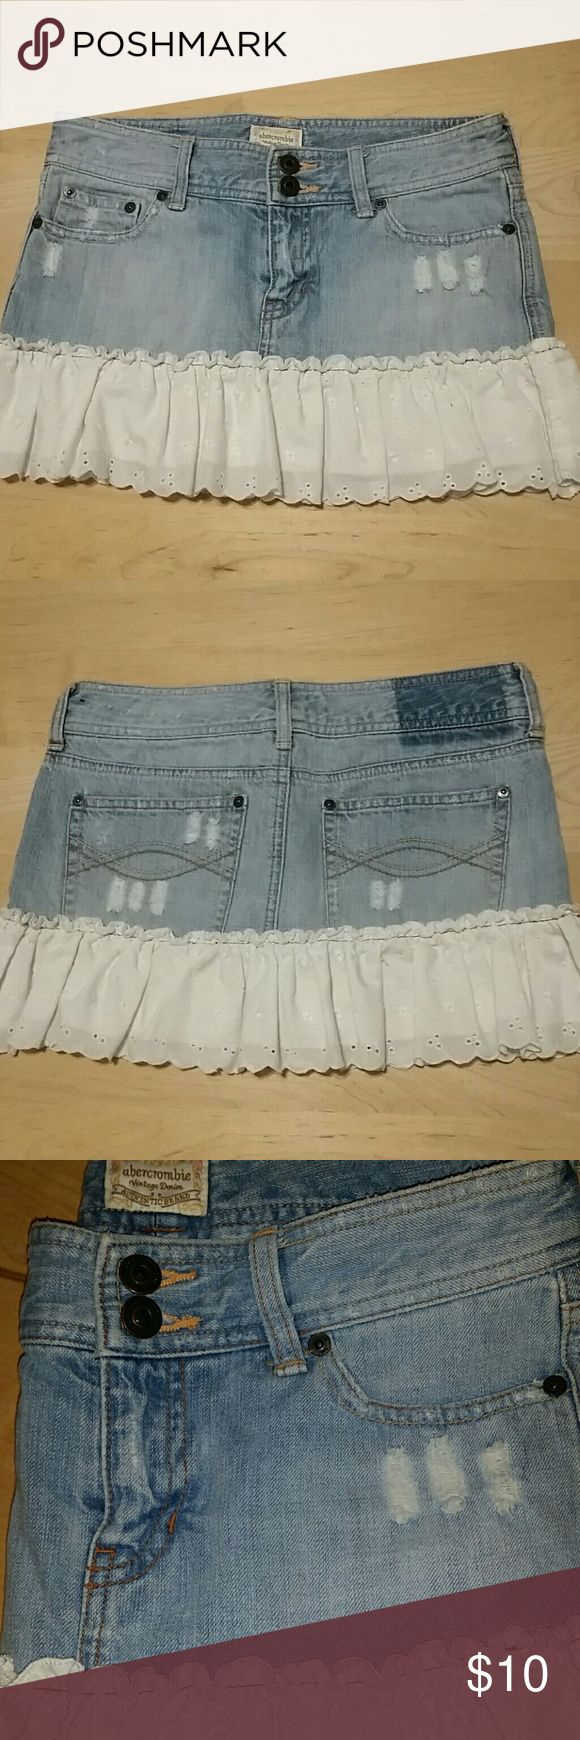 Abercrombie Girls Denim Skirt 14 Size: 14  Abercrombie Vintage Denim, skirt has intentionally been distressed by A&F, not me. It features a white eyelet trim around the bottom.   Any questions please feel free to ask!  Offers are welcome through the offer button :) Abercombie Kids Bottoms Skirts